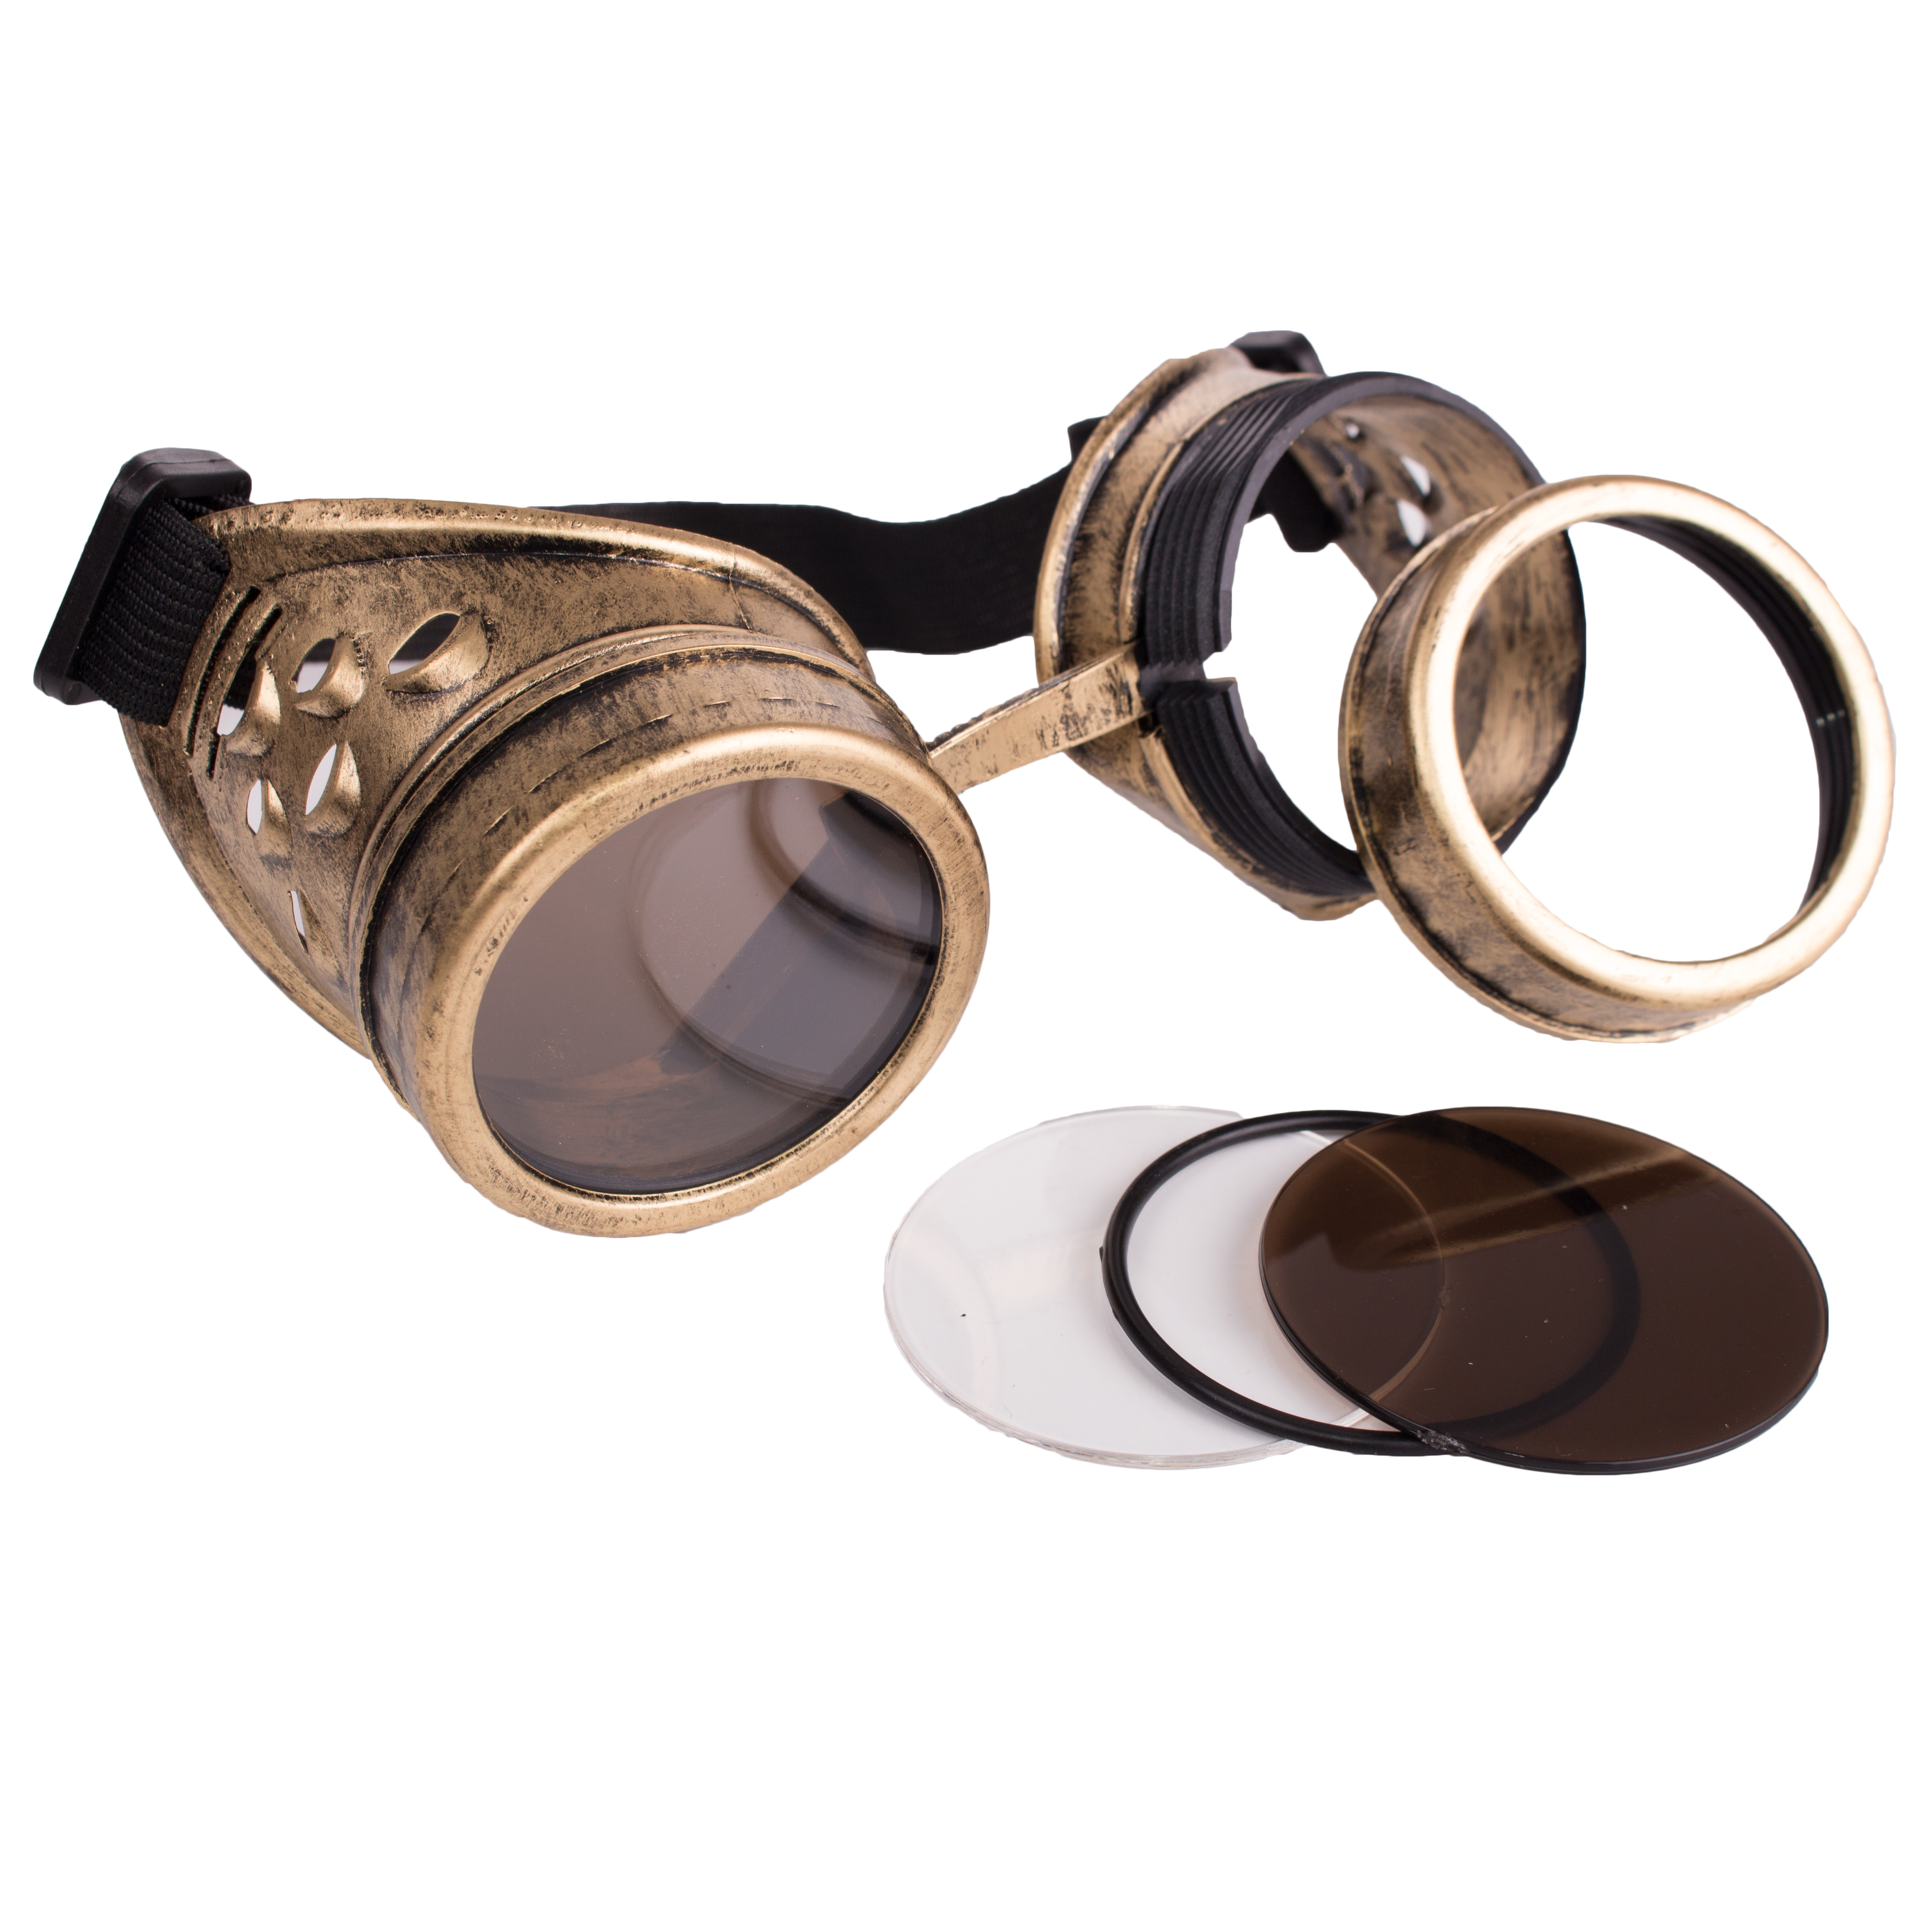 Vintage Steampunk Goggles Gold Welding Glasses Multiple Lenses Black Clear